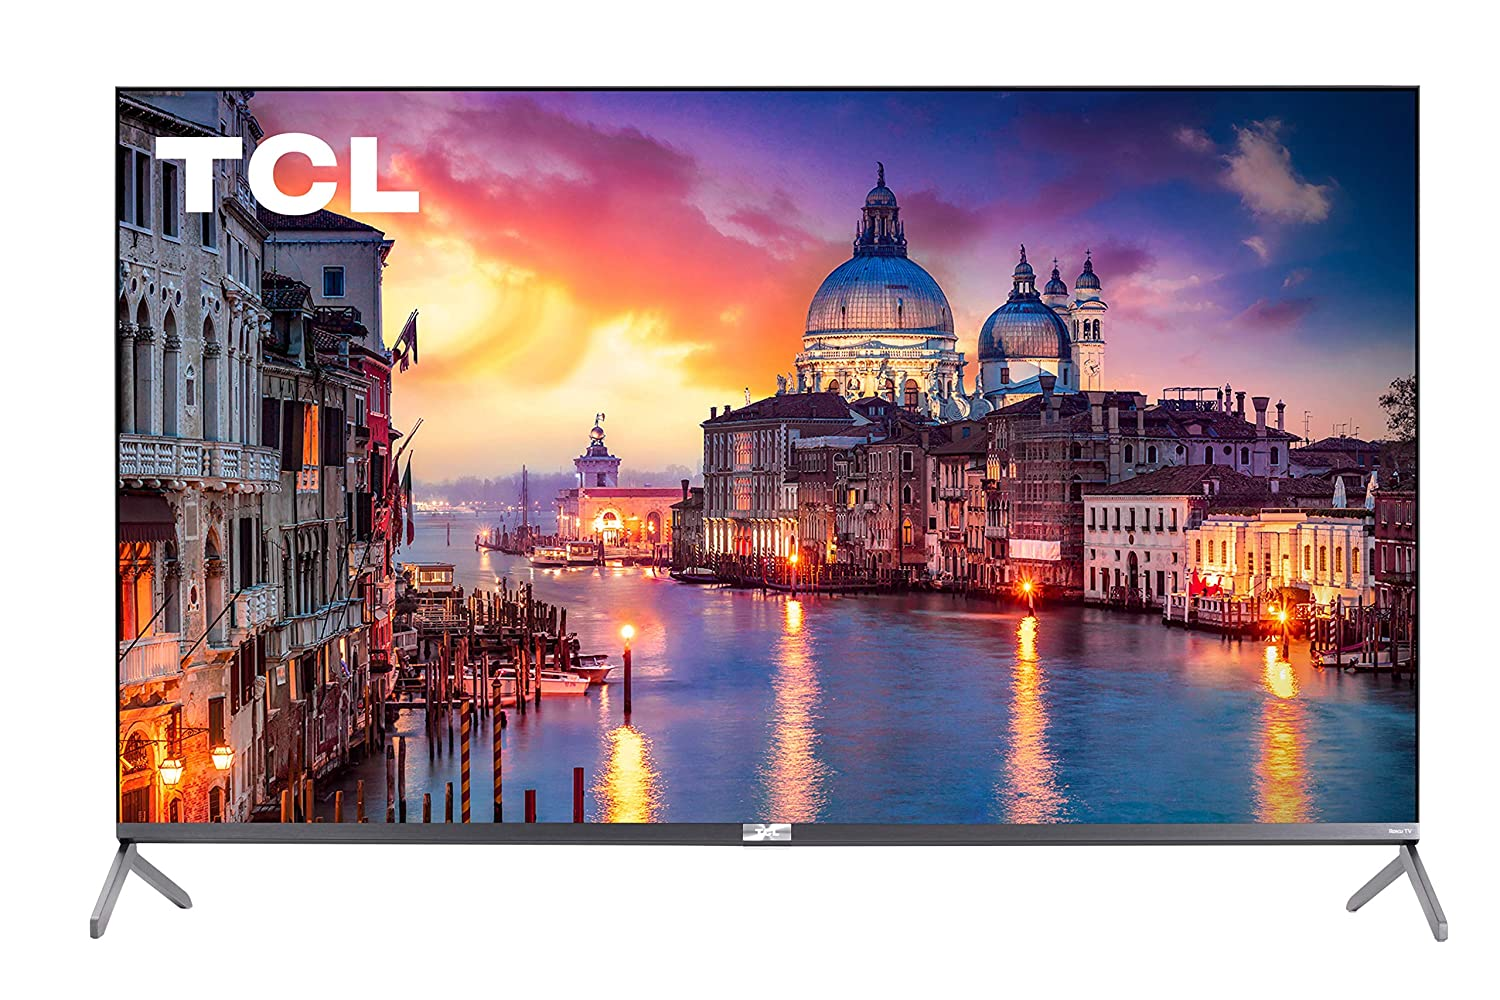 TCL 55-inch Class 6-Series 4K UHD QLED Dolby Vision HDR Roku Smart TV